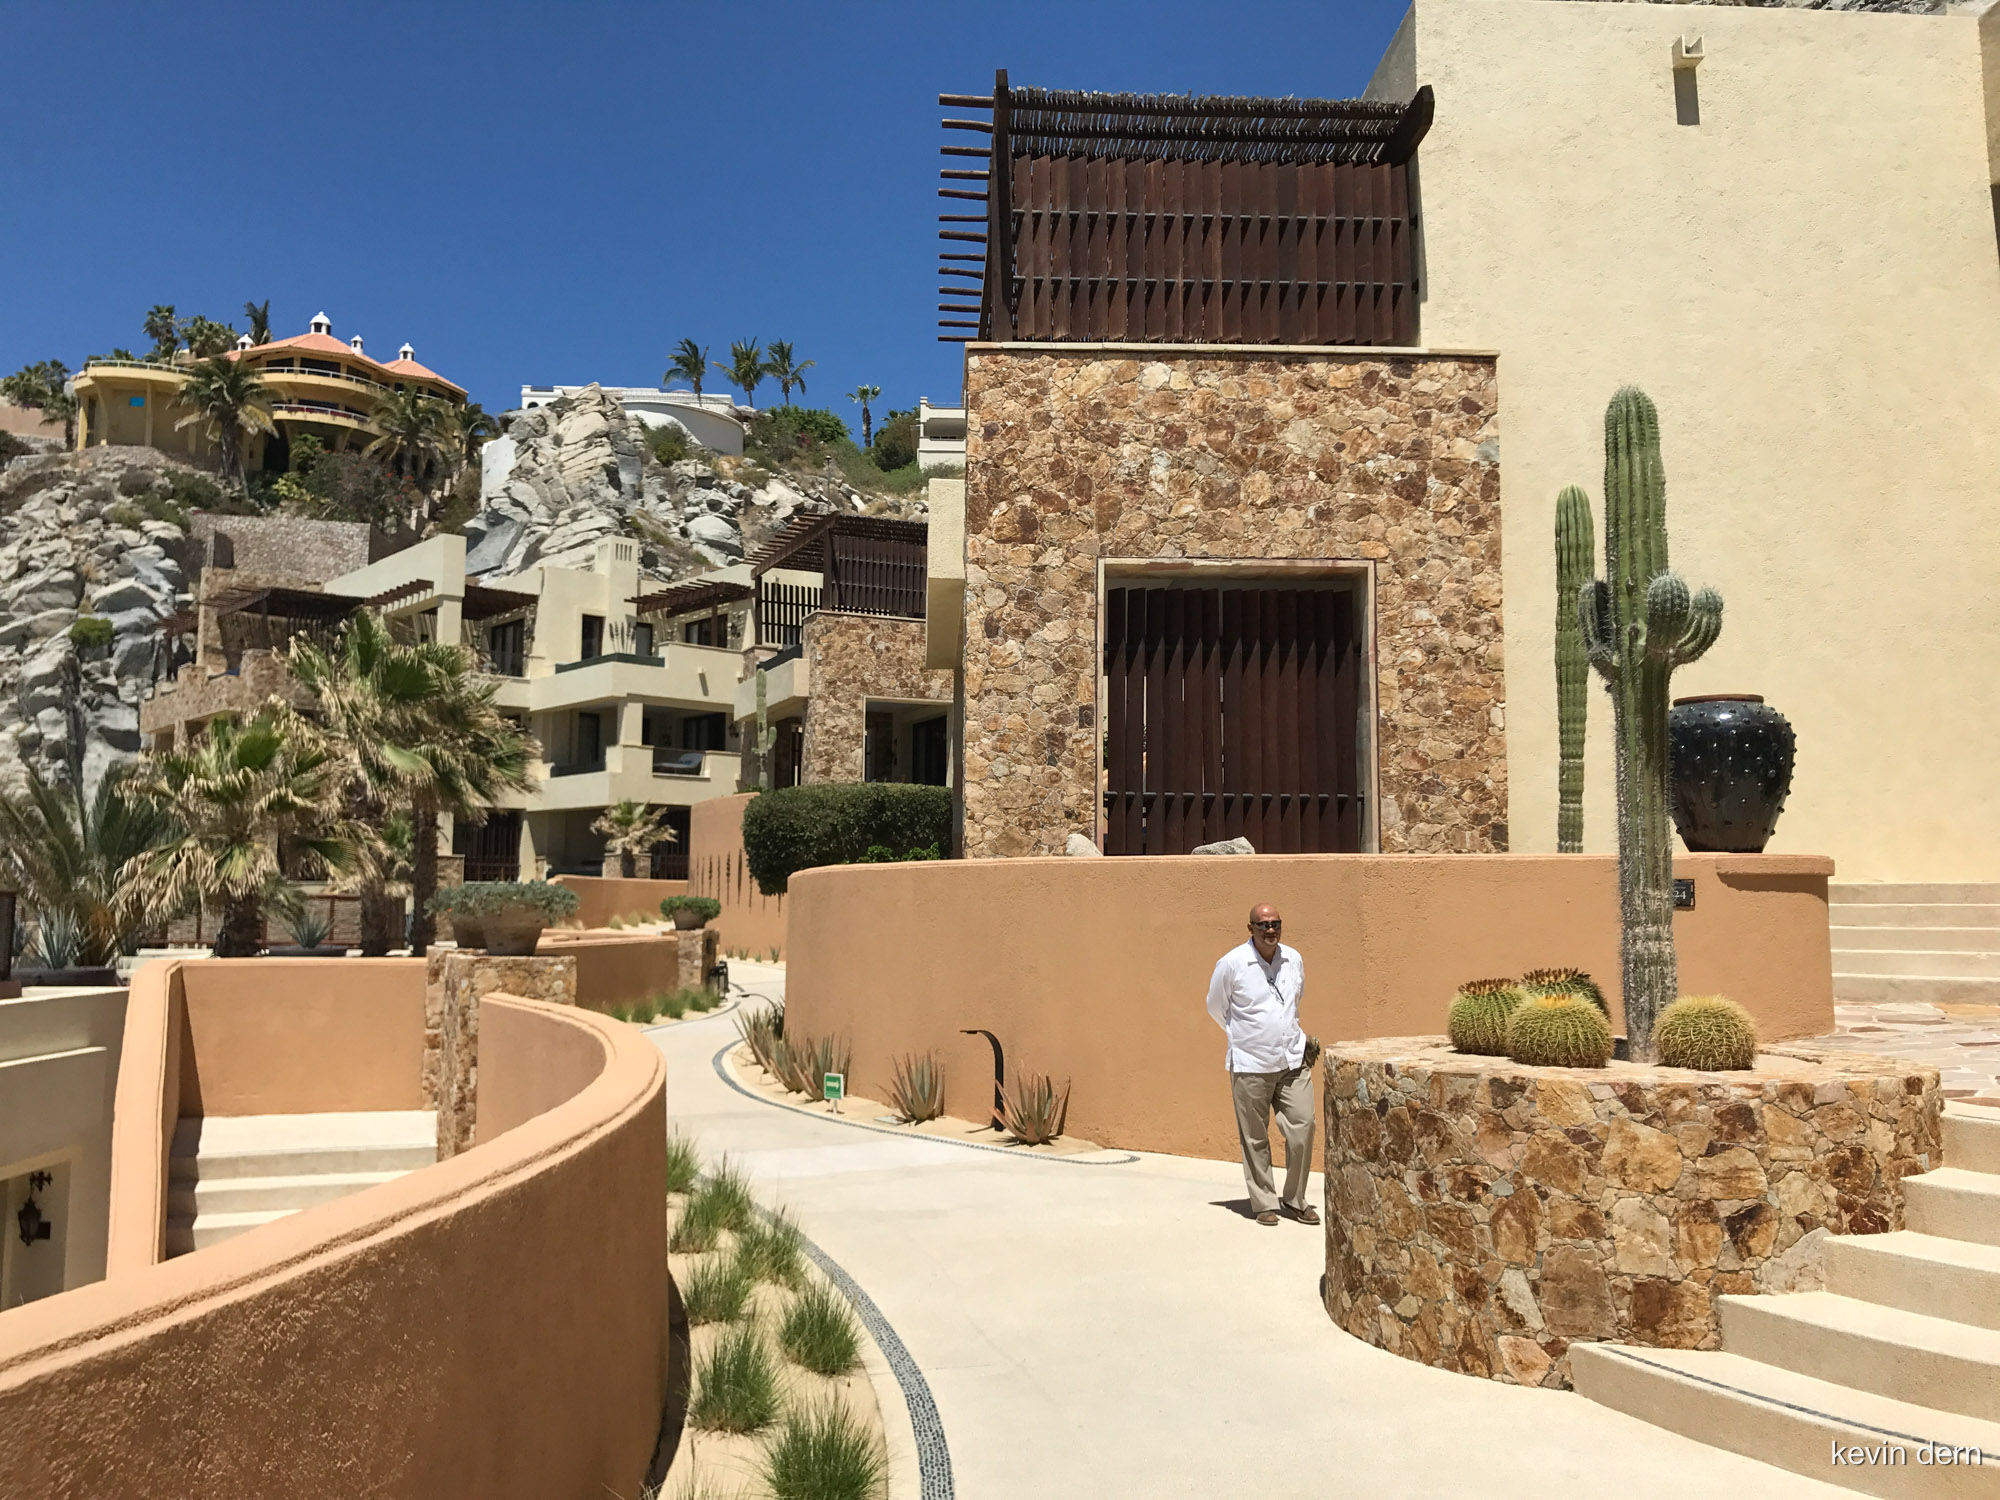 Resort at Pedregal-7.jpg